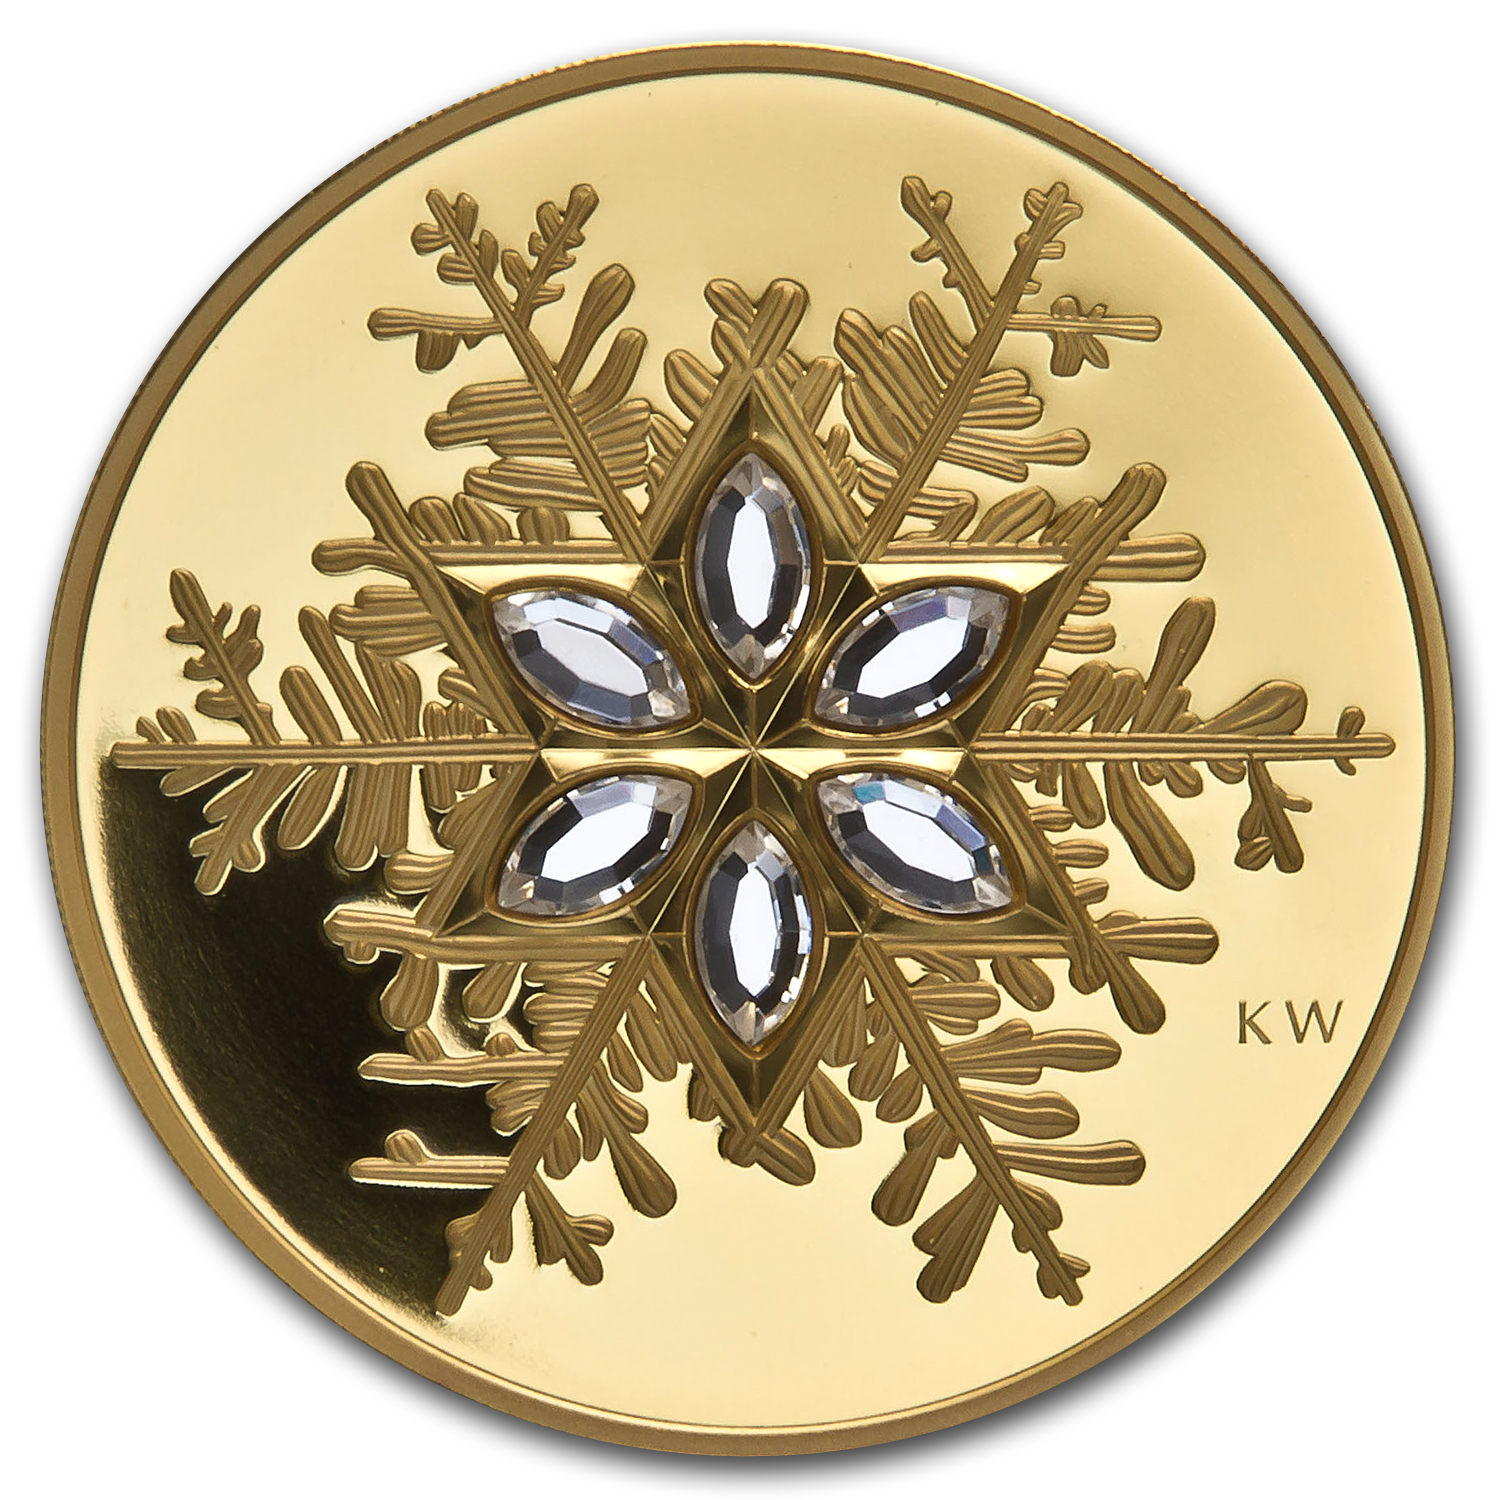 Canada 2006 $300 Proof Gold Coin Crystal Snowflake